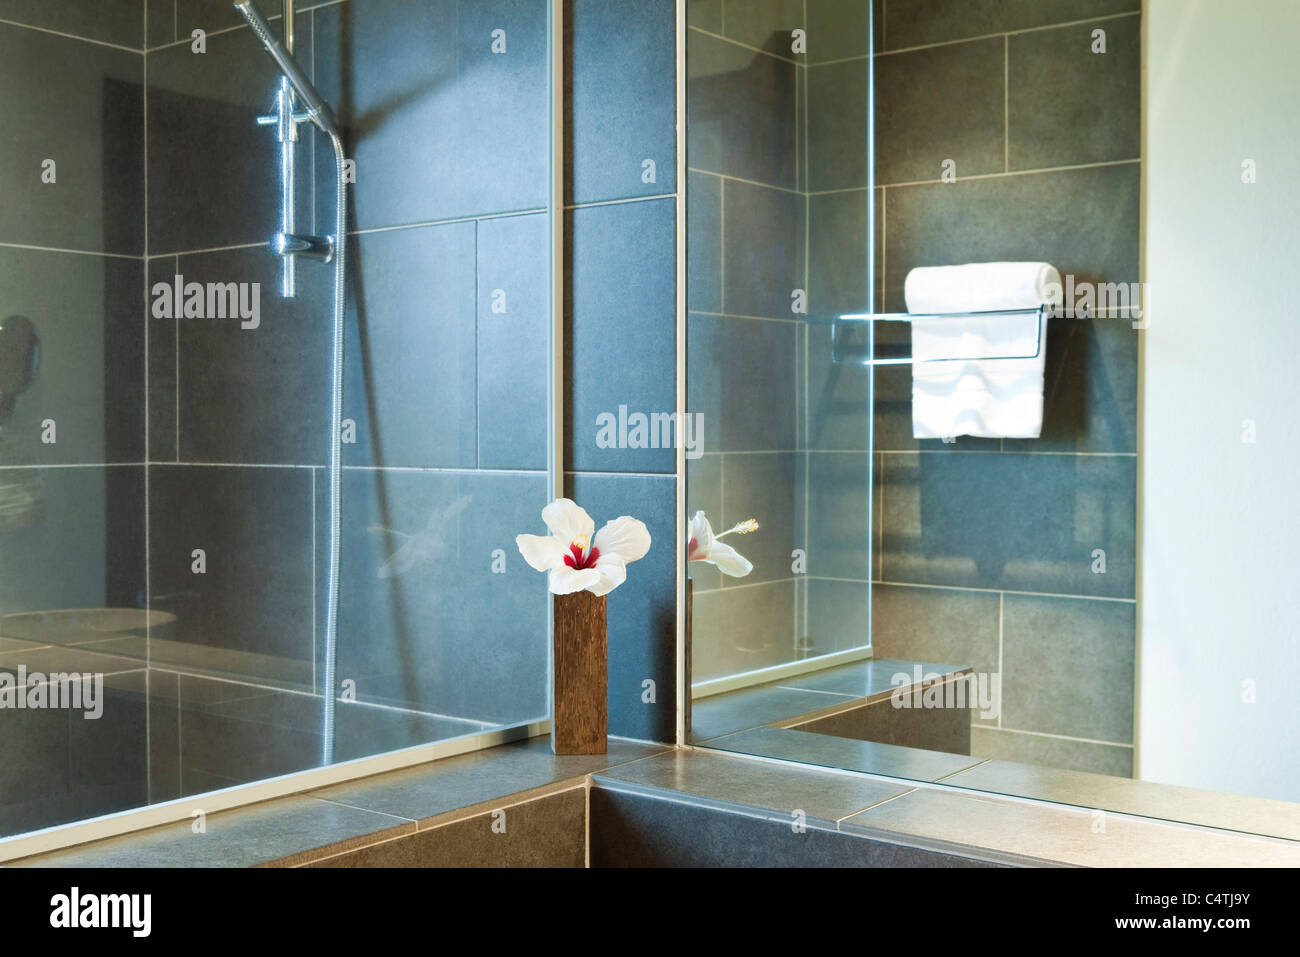 Shower Time Stock Photos & Shower Time Stock Images - Page 3 - Alamy